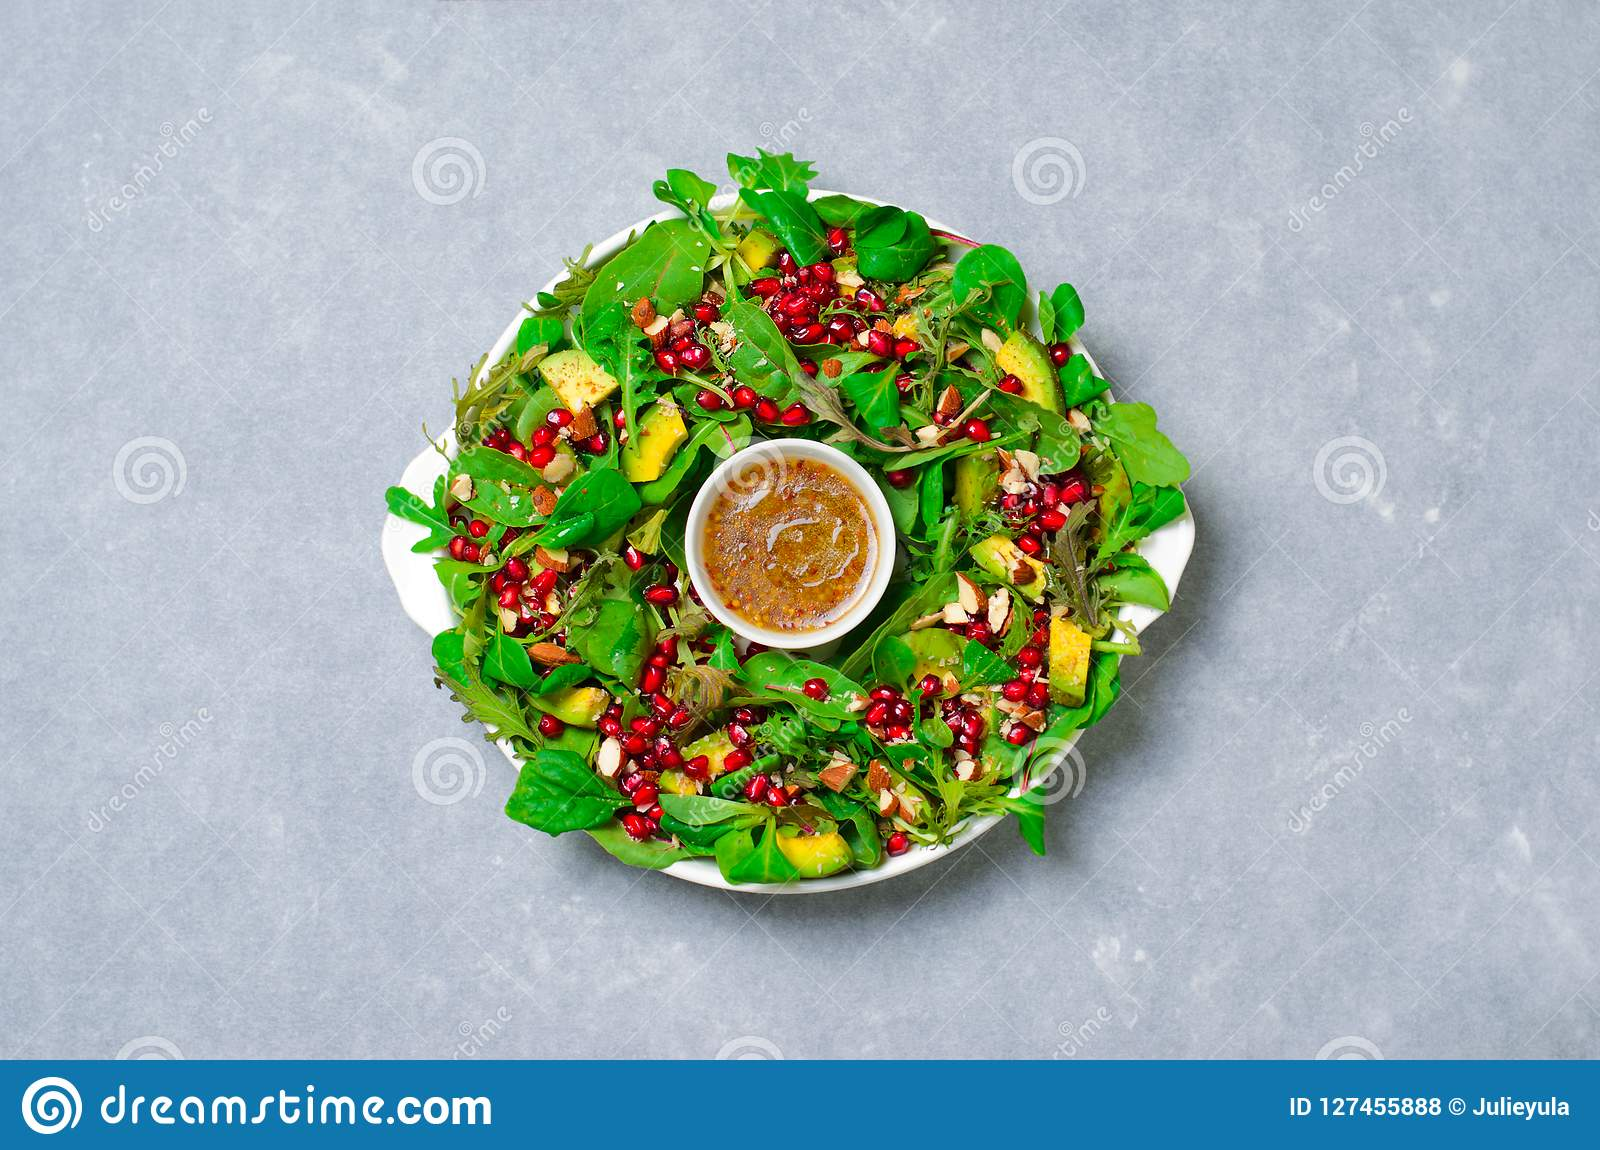 Christmas Wreath Salad with Pomegranate, Avocado, Salad Mix, Almond and Honey-Mustard Dressing, Healthy Eating